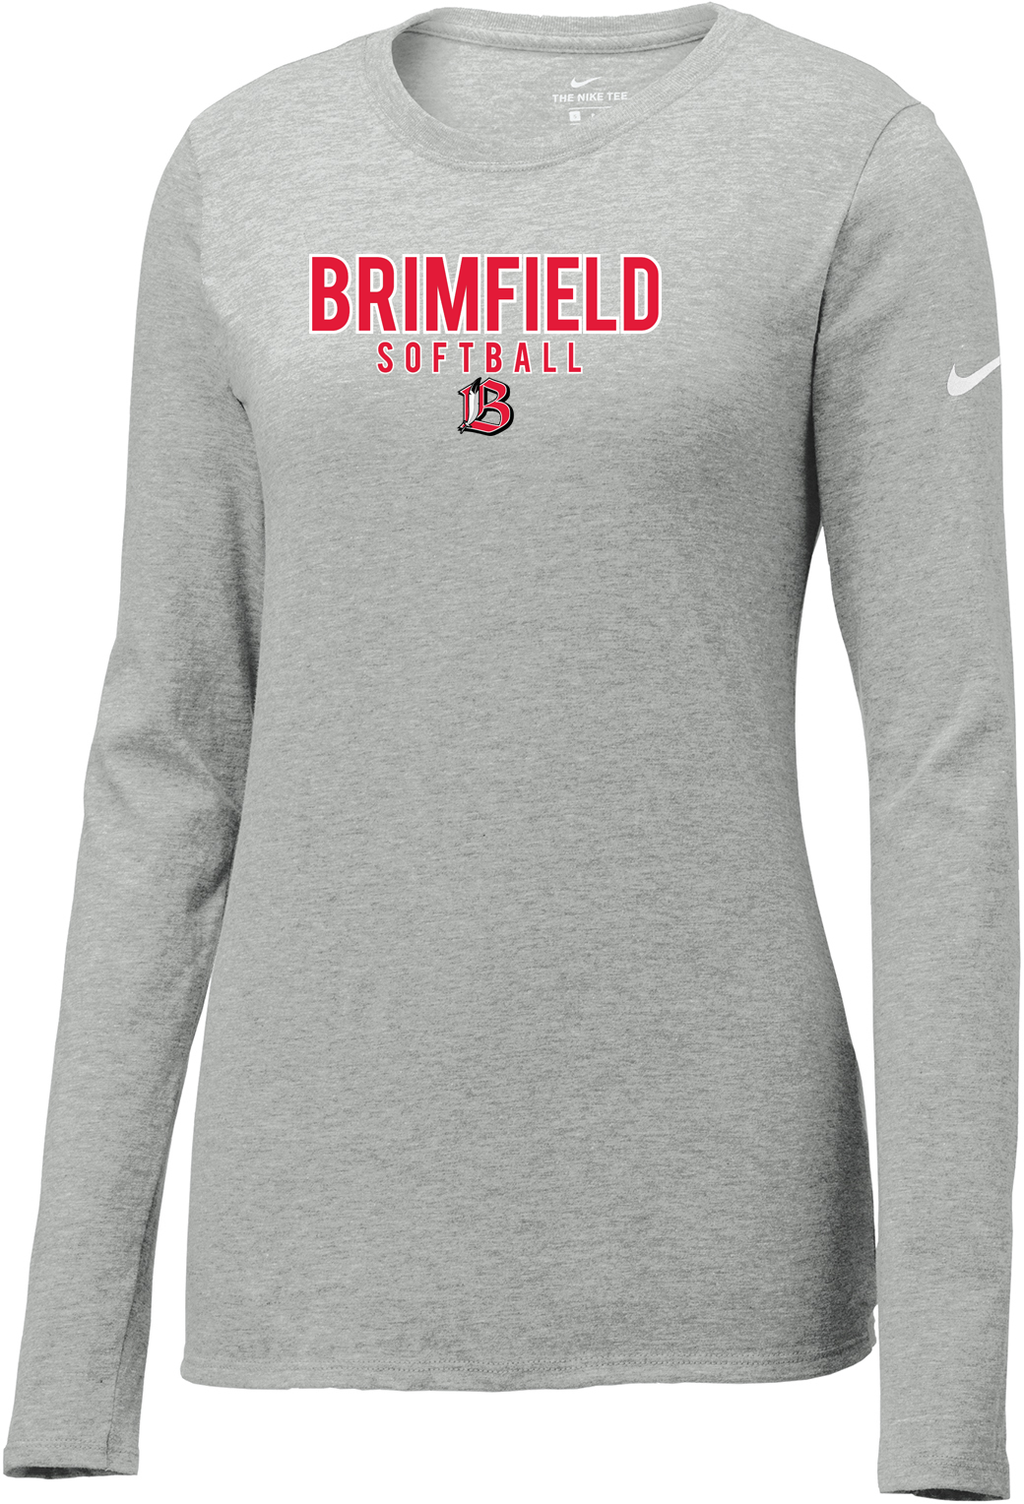 Brimfield Softball Nike Ladies Core Cotton Long Sleeve Tee